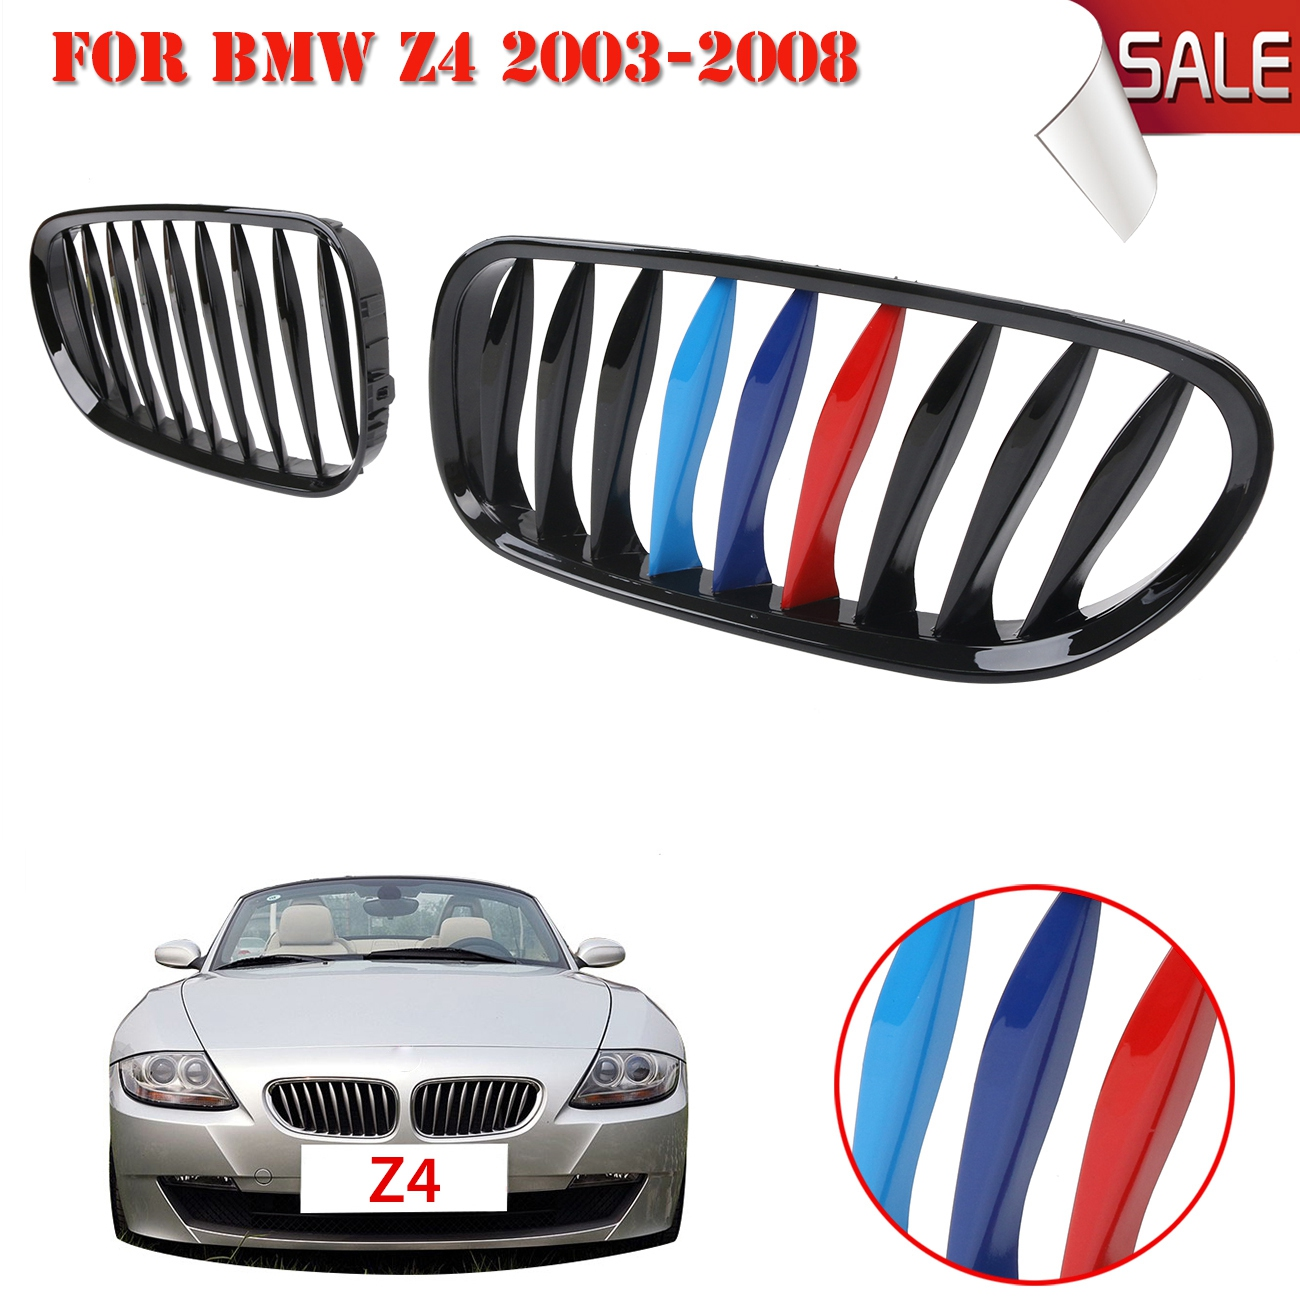 Gloss Black M color Front Kidney Grille Grill For BMW E85 E86 Z4 2003-2008 Convertible Coupe Car Lattice // 4 series f32 f33 f36 front bumper grill gloss black abs car styling grille for bmw f80 m3 f82 f83 m4 replacement car part